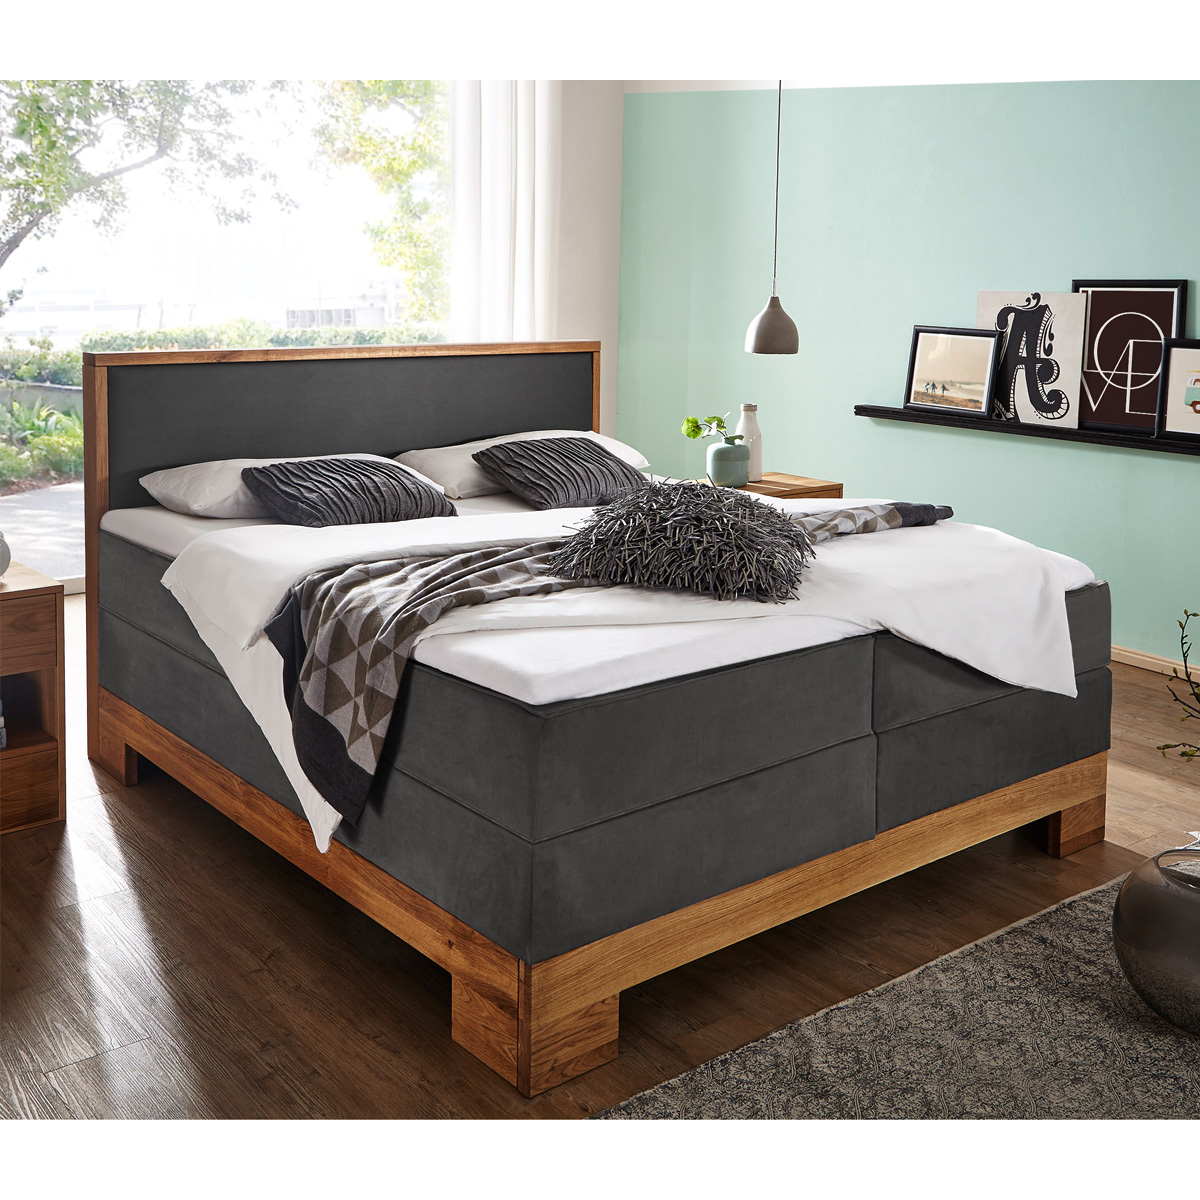 boxspringbett guana doppelbett in grau wildeiche massiv 7. Black Bedroom Furniture Sets. Home Design Ideas